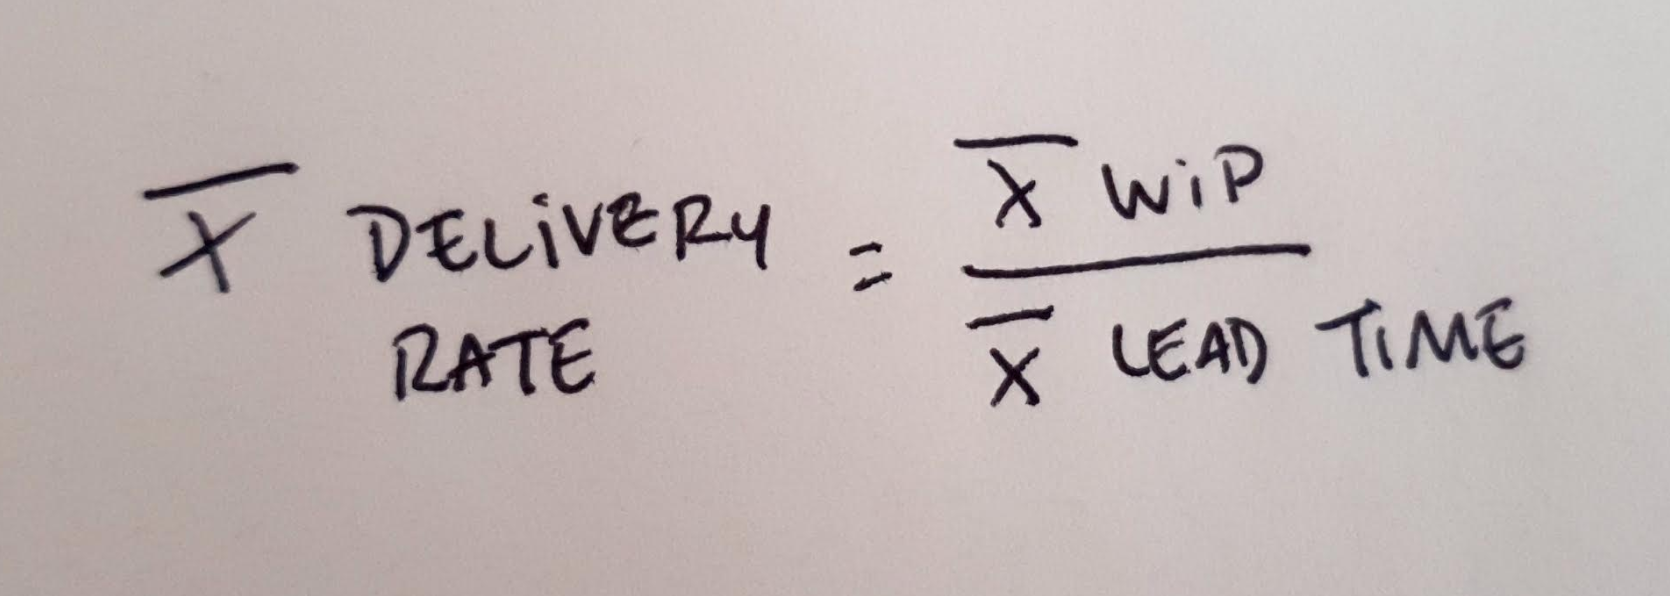 drawing of the formula to calculate delivery rate